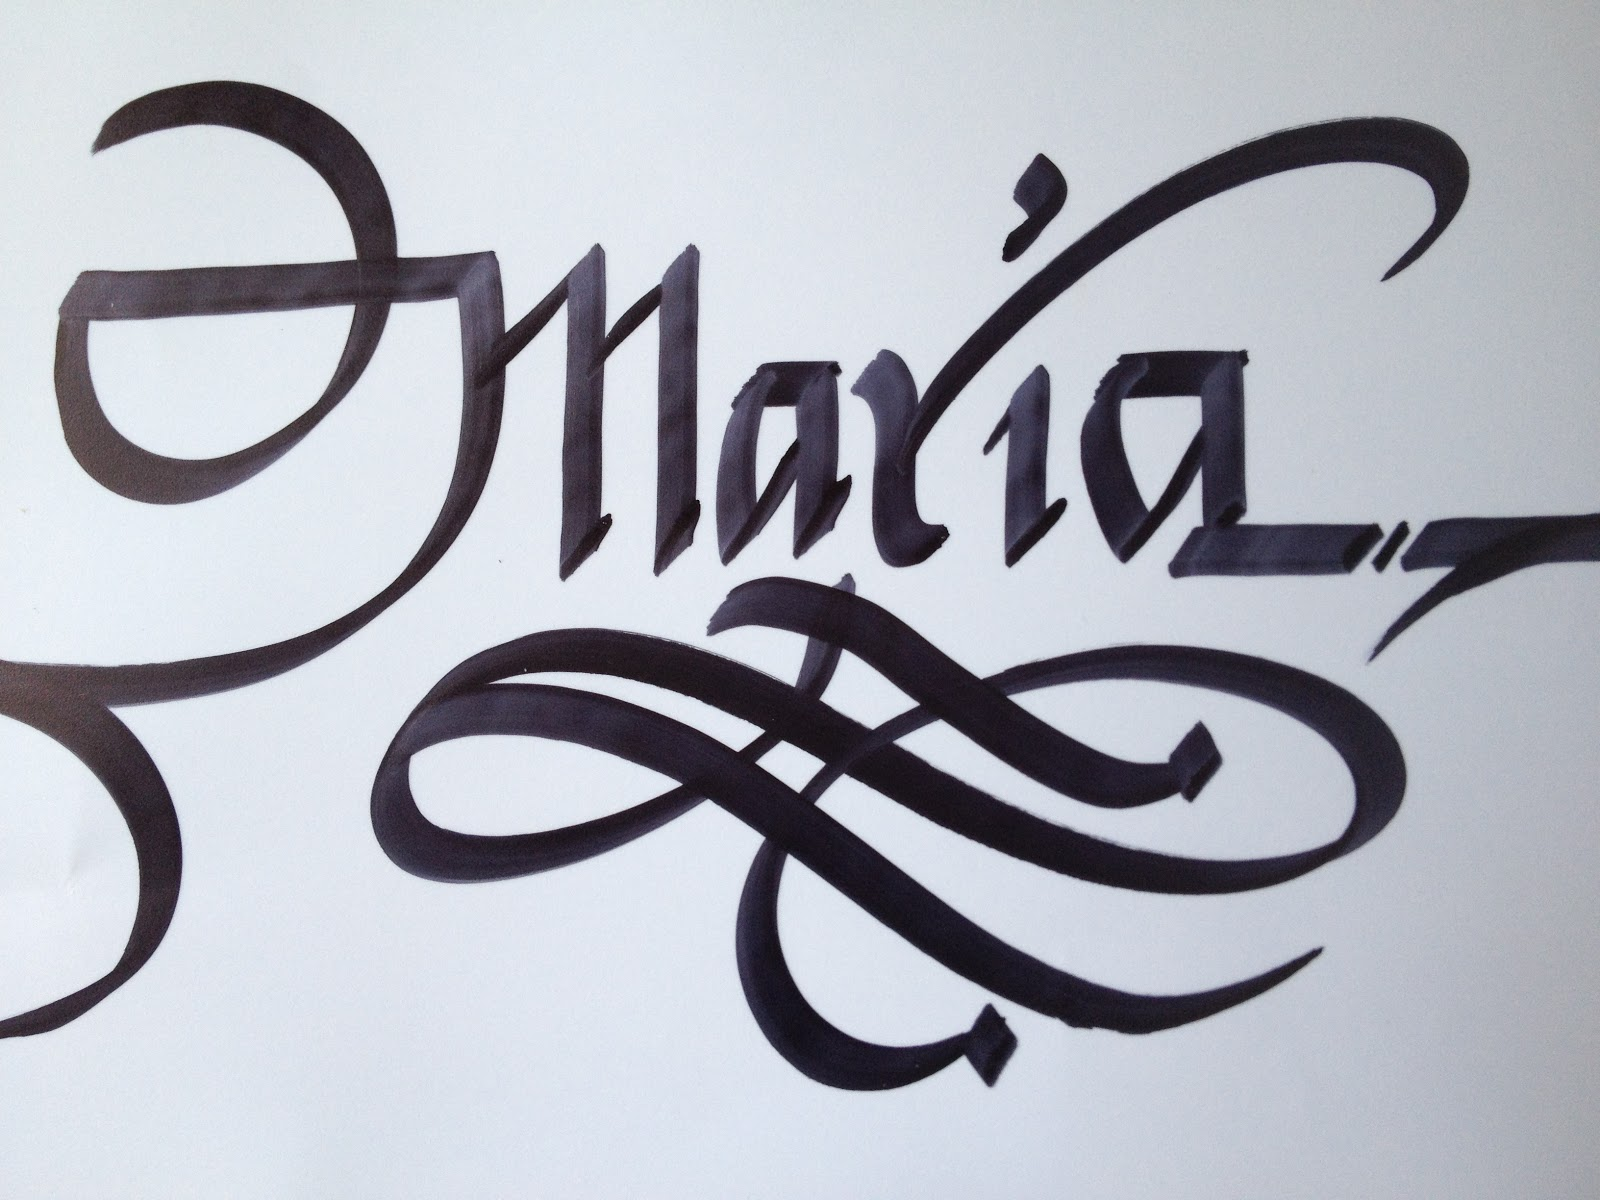 K Written In Calligraphy Calligraphy Art Girl Names In Calligraphy 2 Lola And Maria